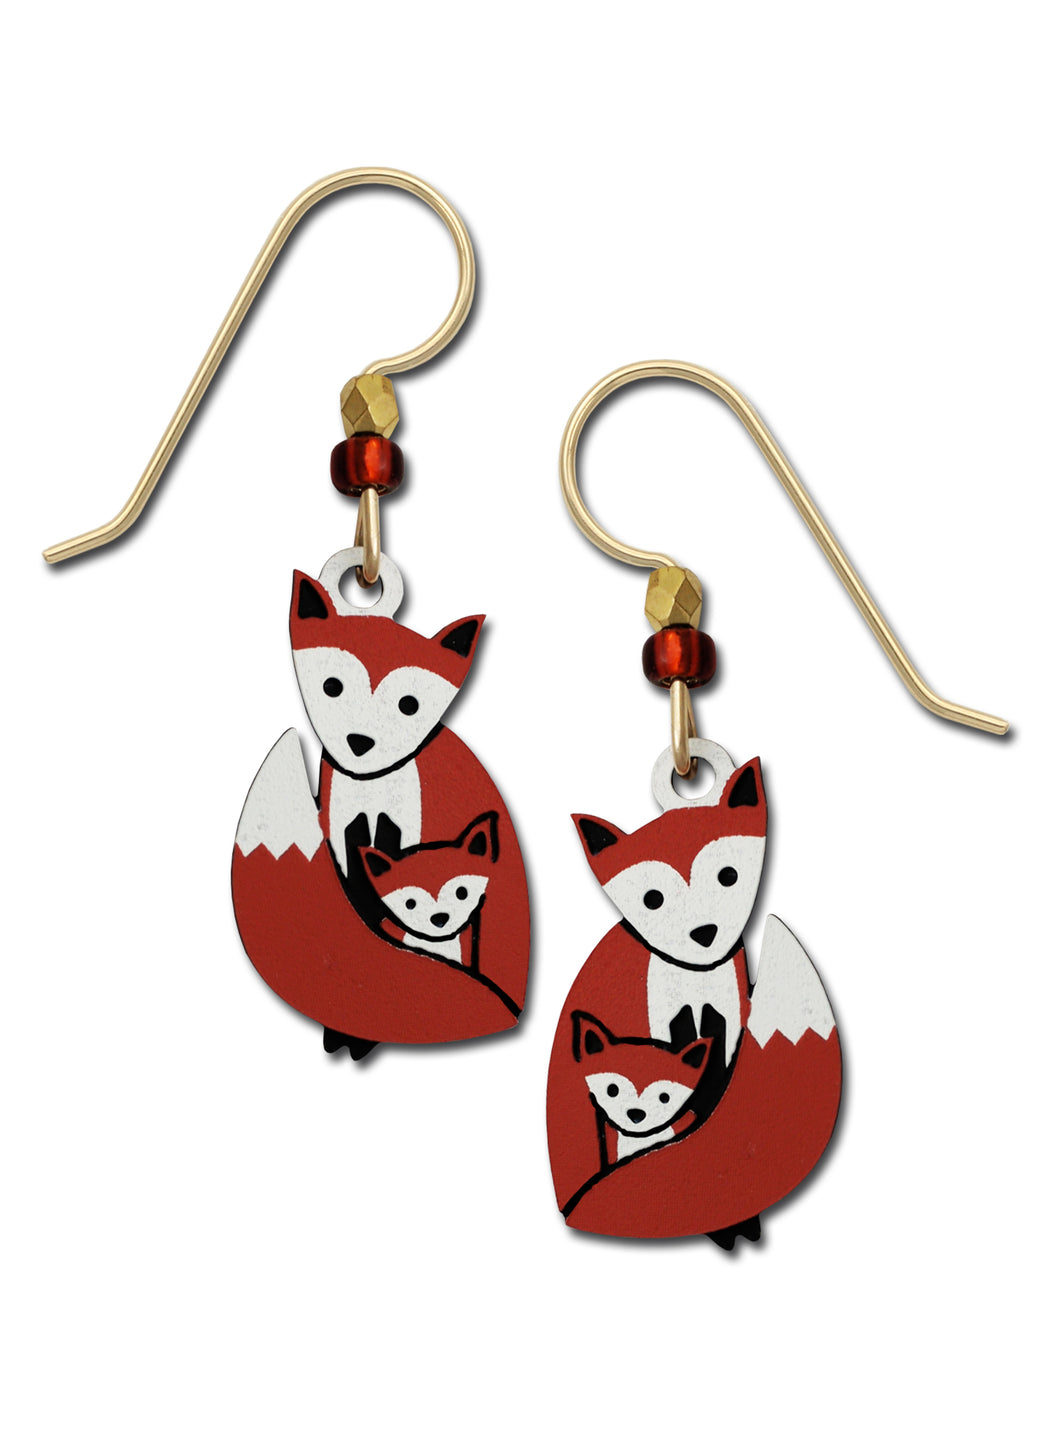 Sienna Sky Mother Fox Holding Baby Hand Painted Earrings